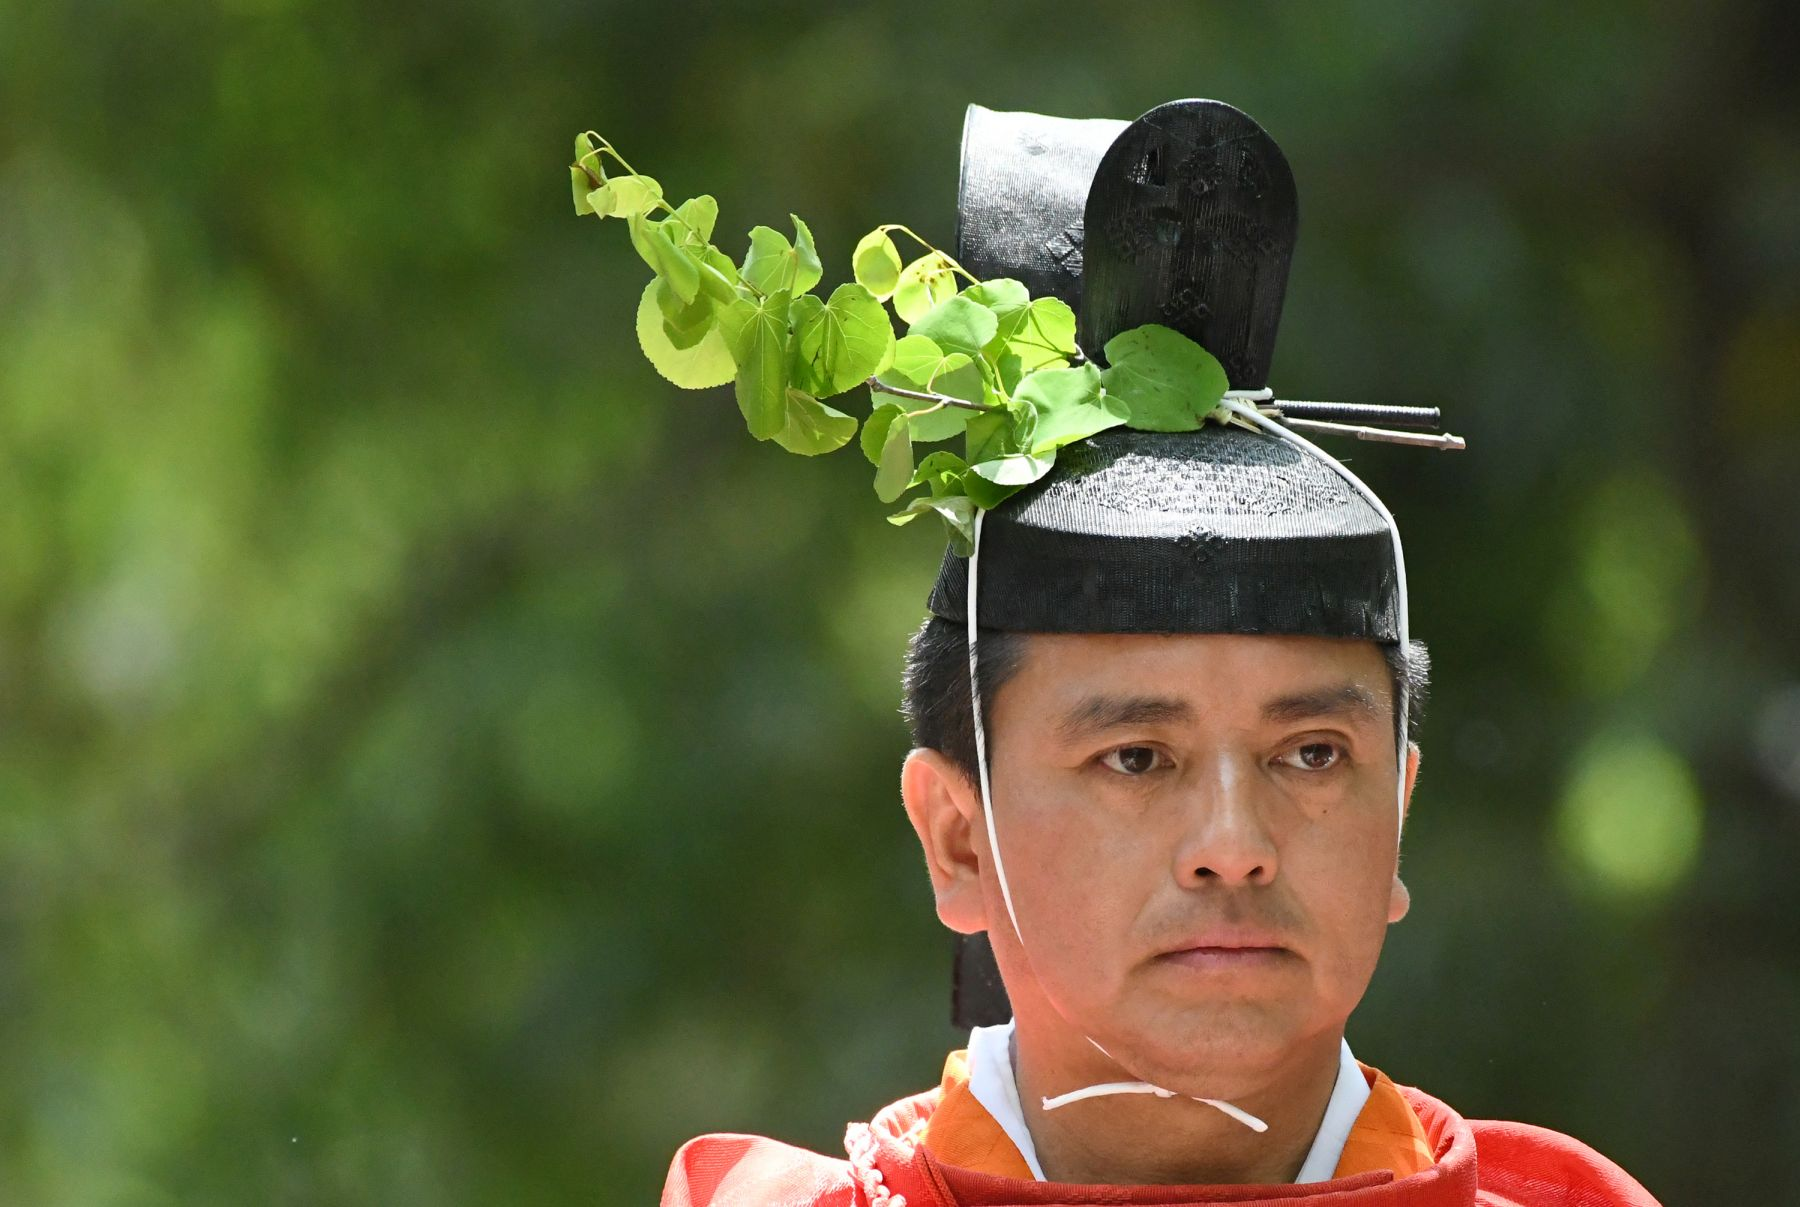 Kyoto's Colorful Traditions on Display at First Aoi Matsuri of Reiwa Era